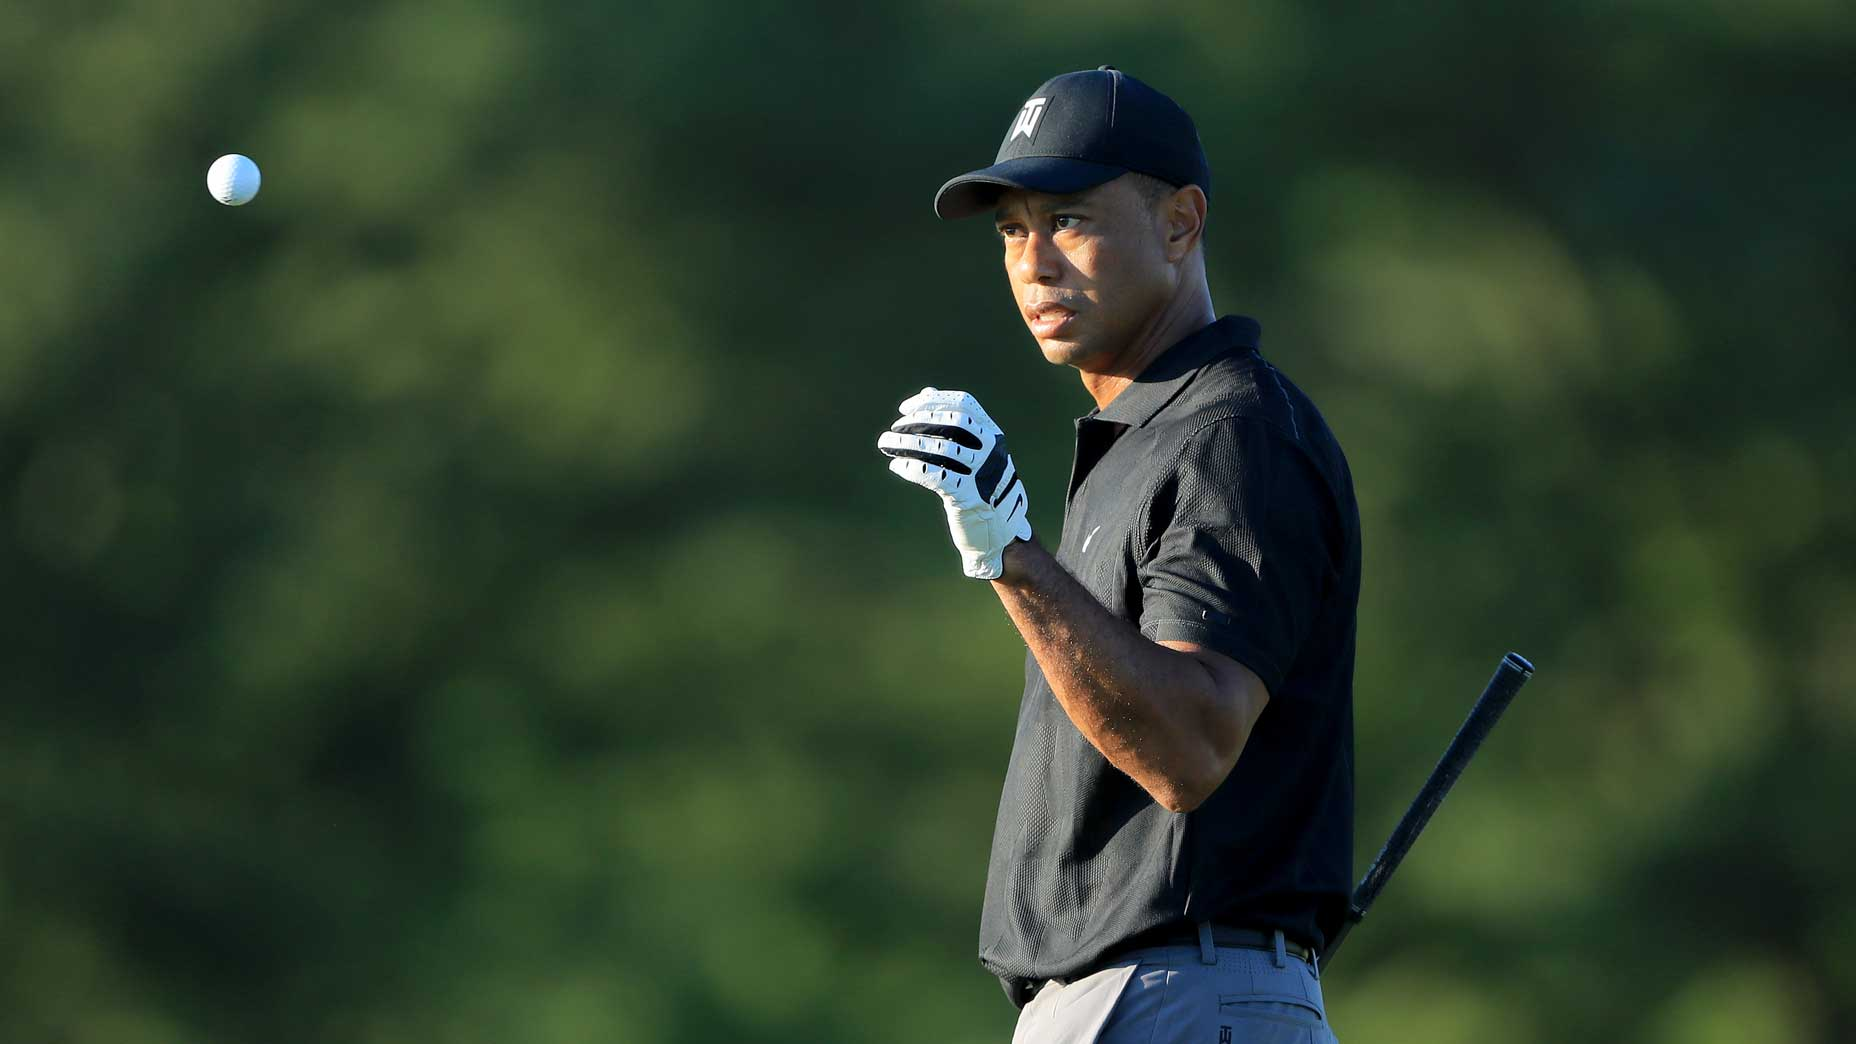 Tiger Woods catches golf ball